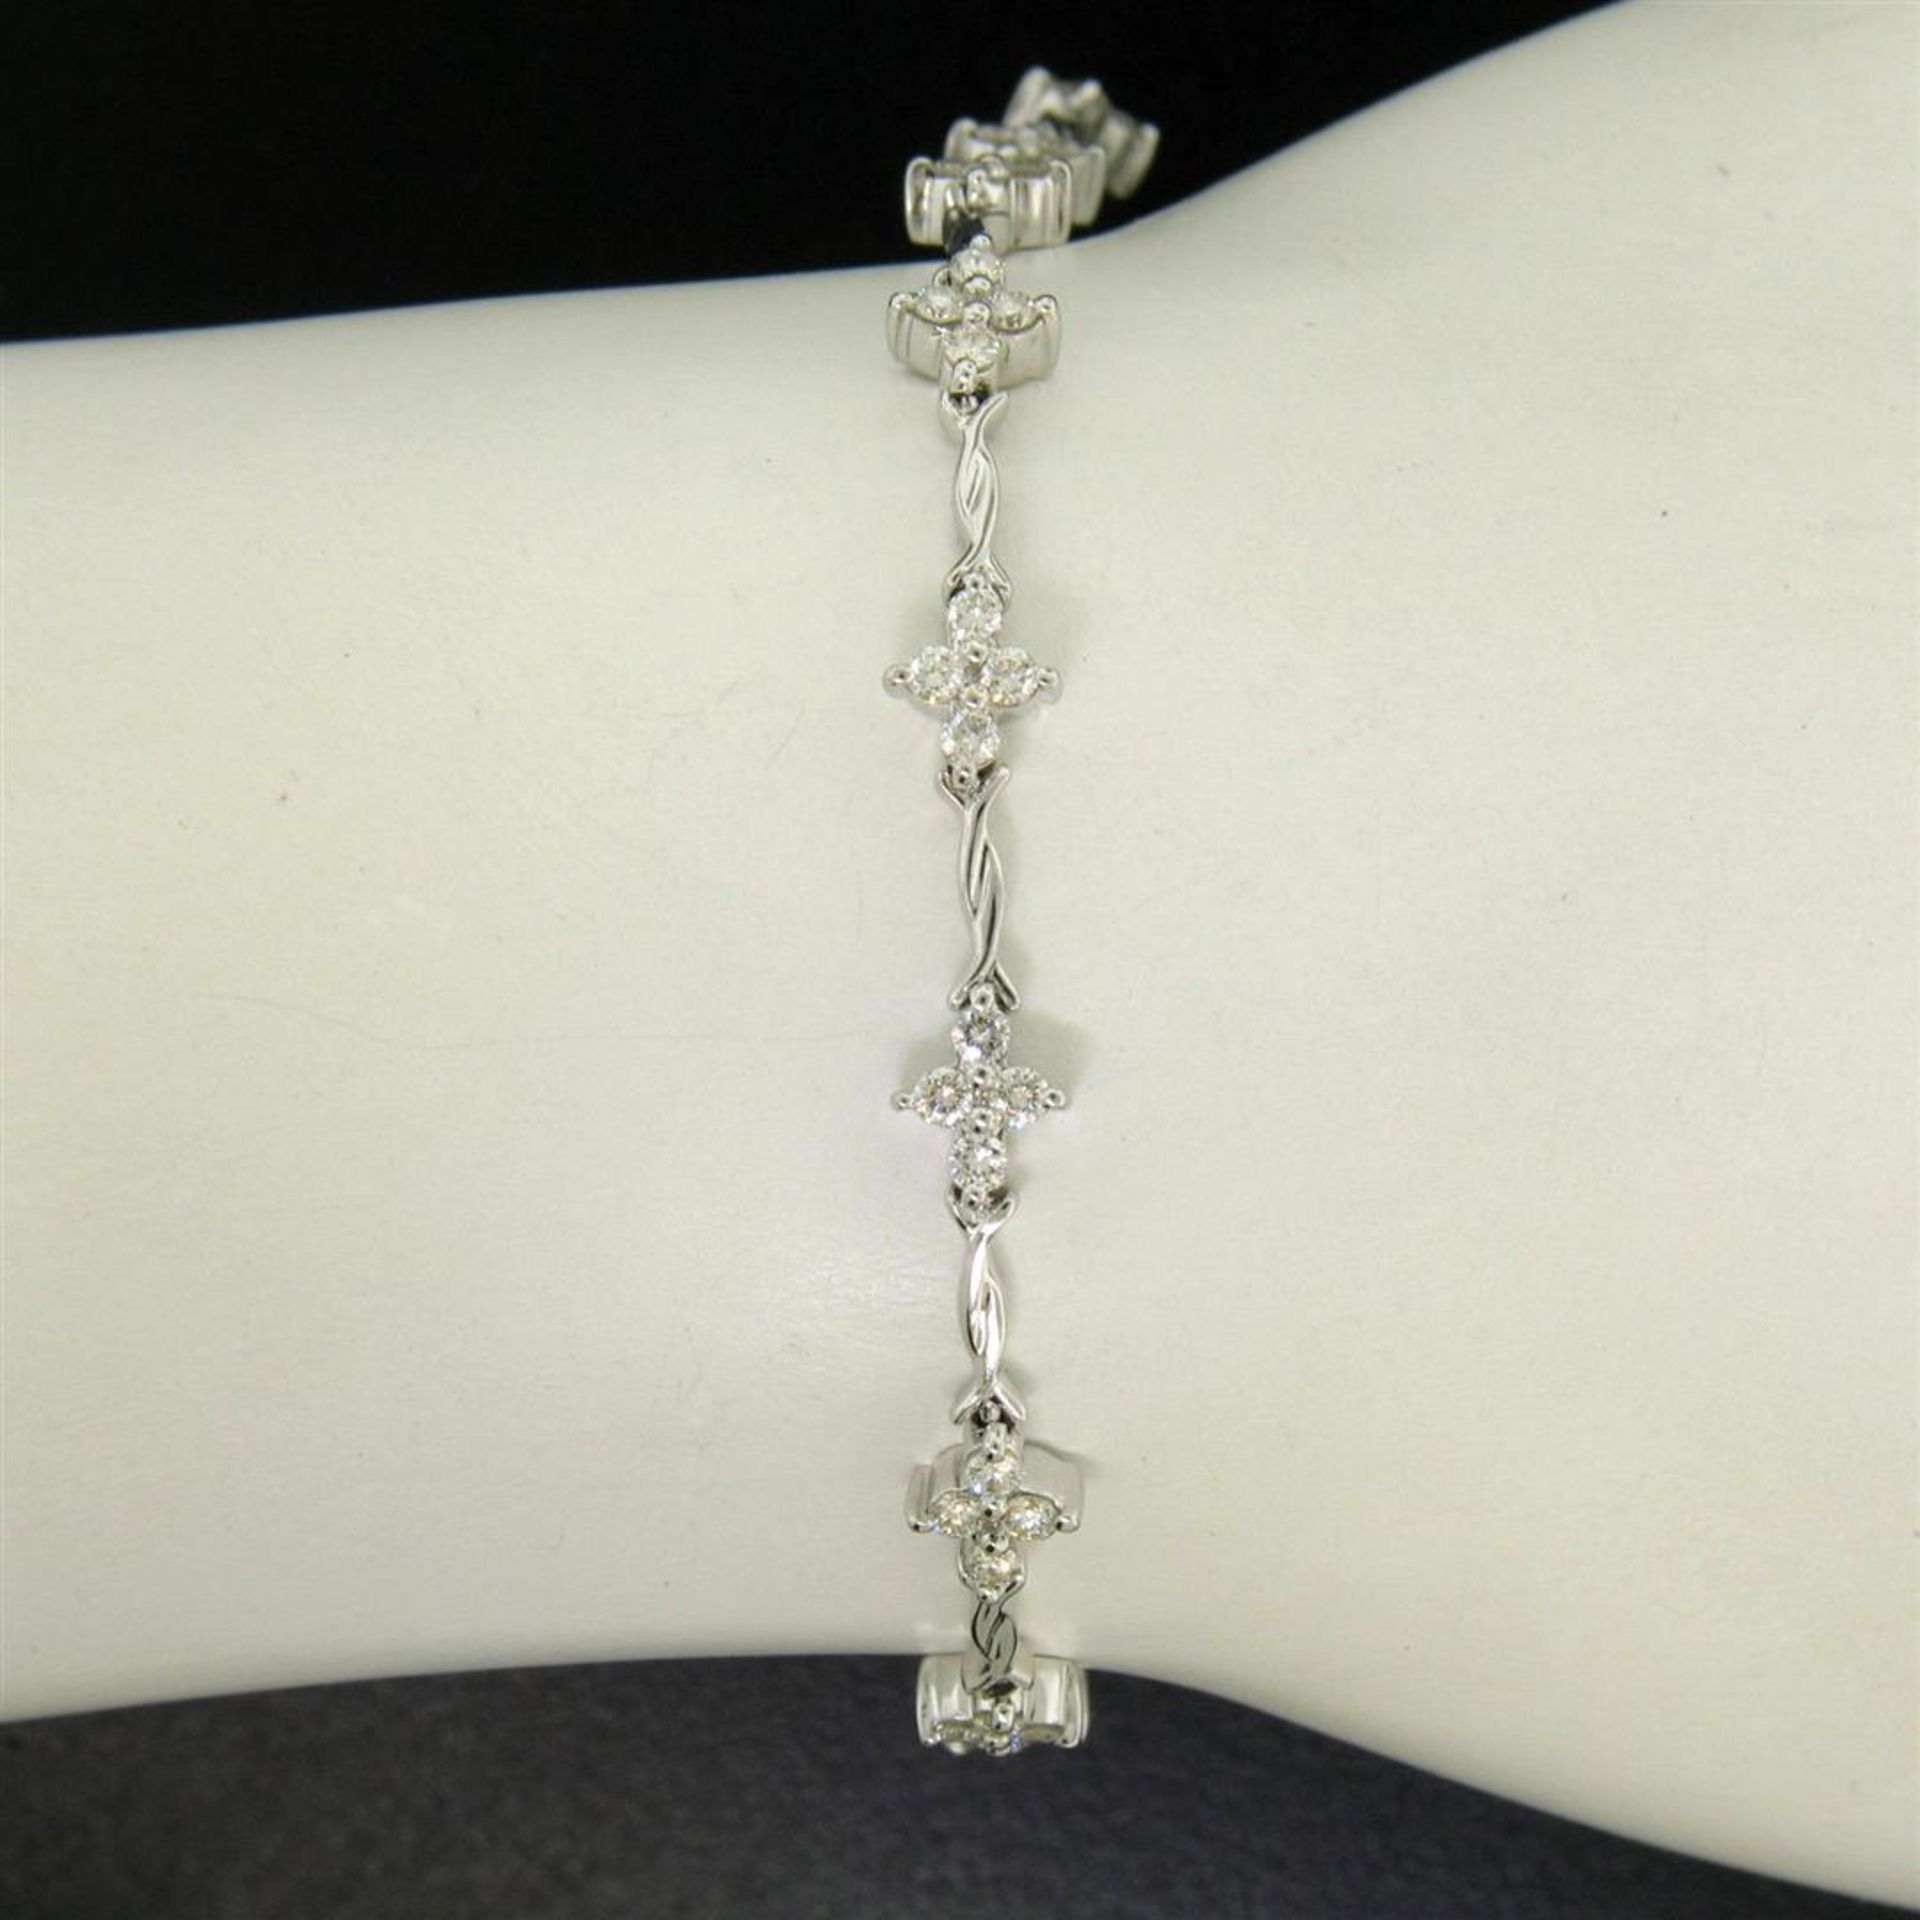 18K White Gold 1.65ctw Diamond Flower Cluster Twisted Wire Link Tennis Bracelet - Image 3 of 6